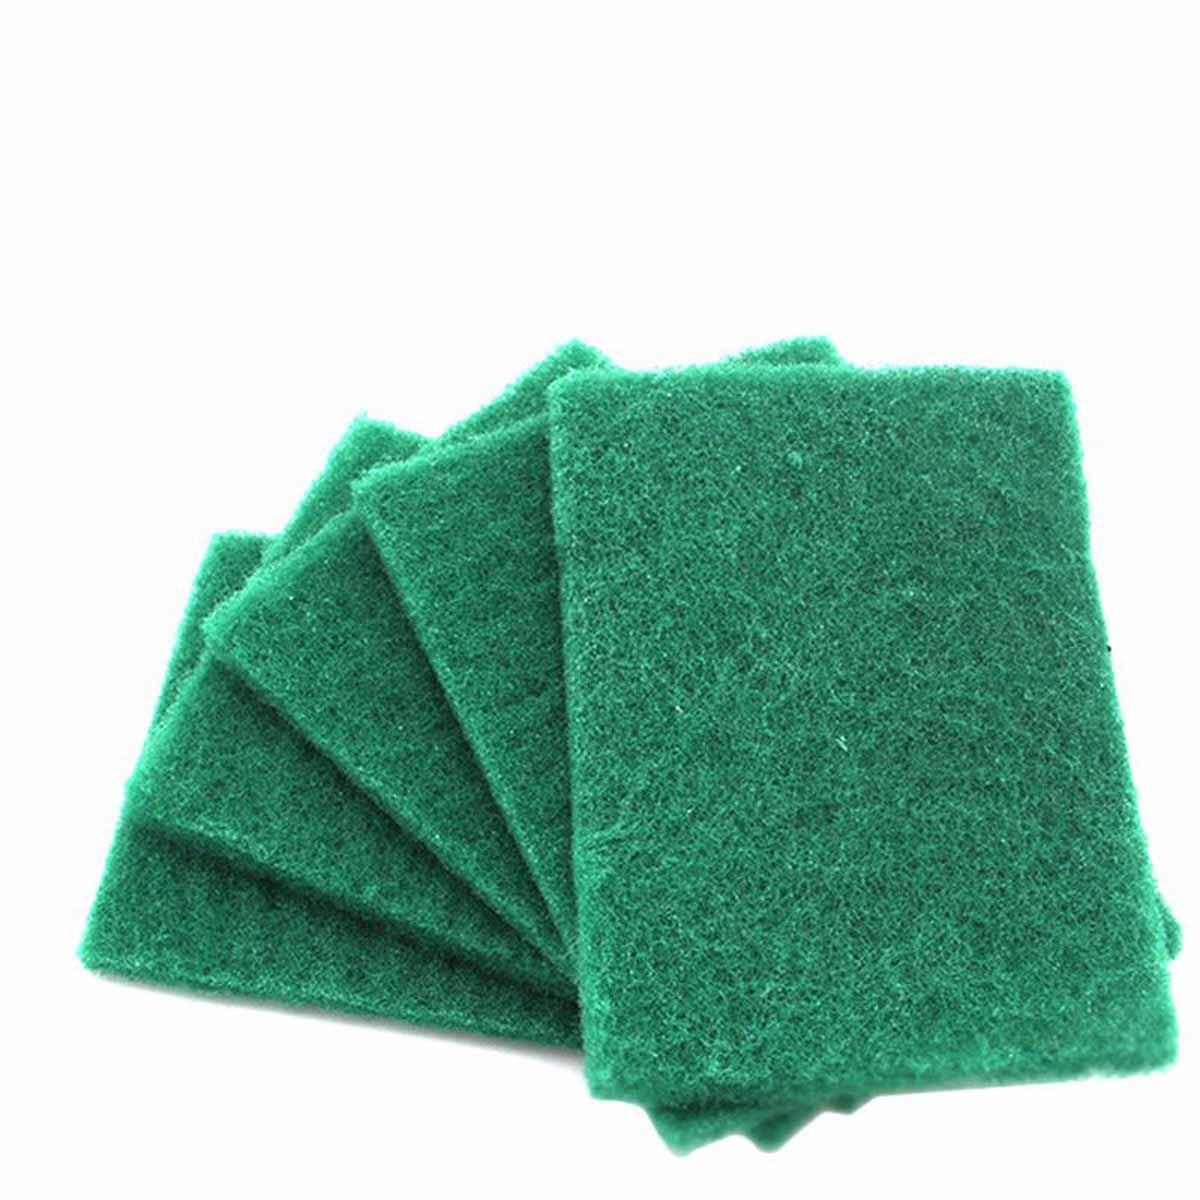 Pack of 20 Heavy Duty Green Catering Kitchen Sponge Scourer Pads Scouring Pad